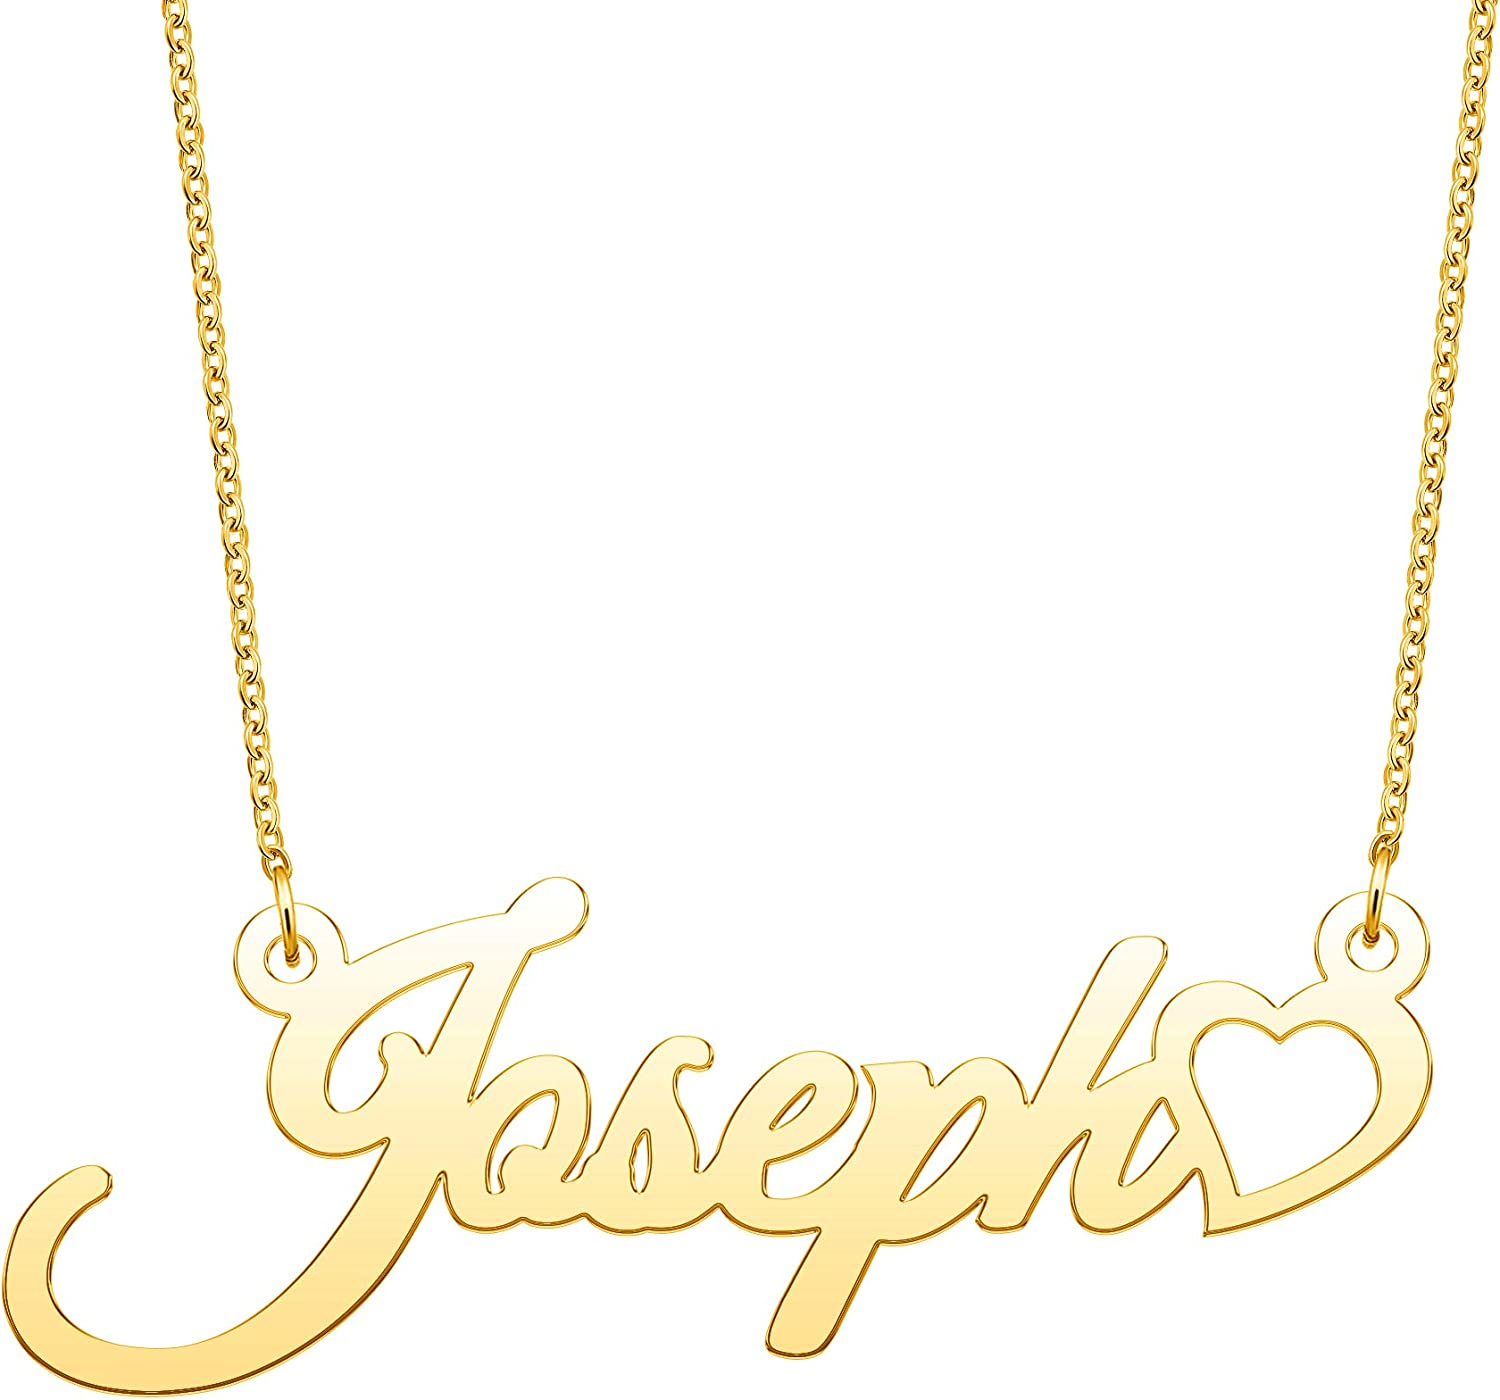 YSAHan Love Heart Name Necklace Personalized Script Cursive Name Gold Jewelry Birthday Gift for Women